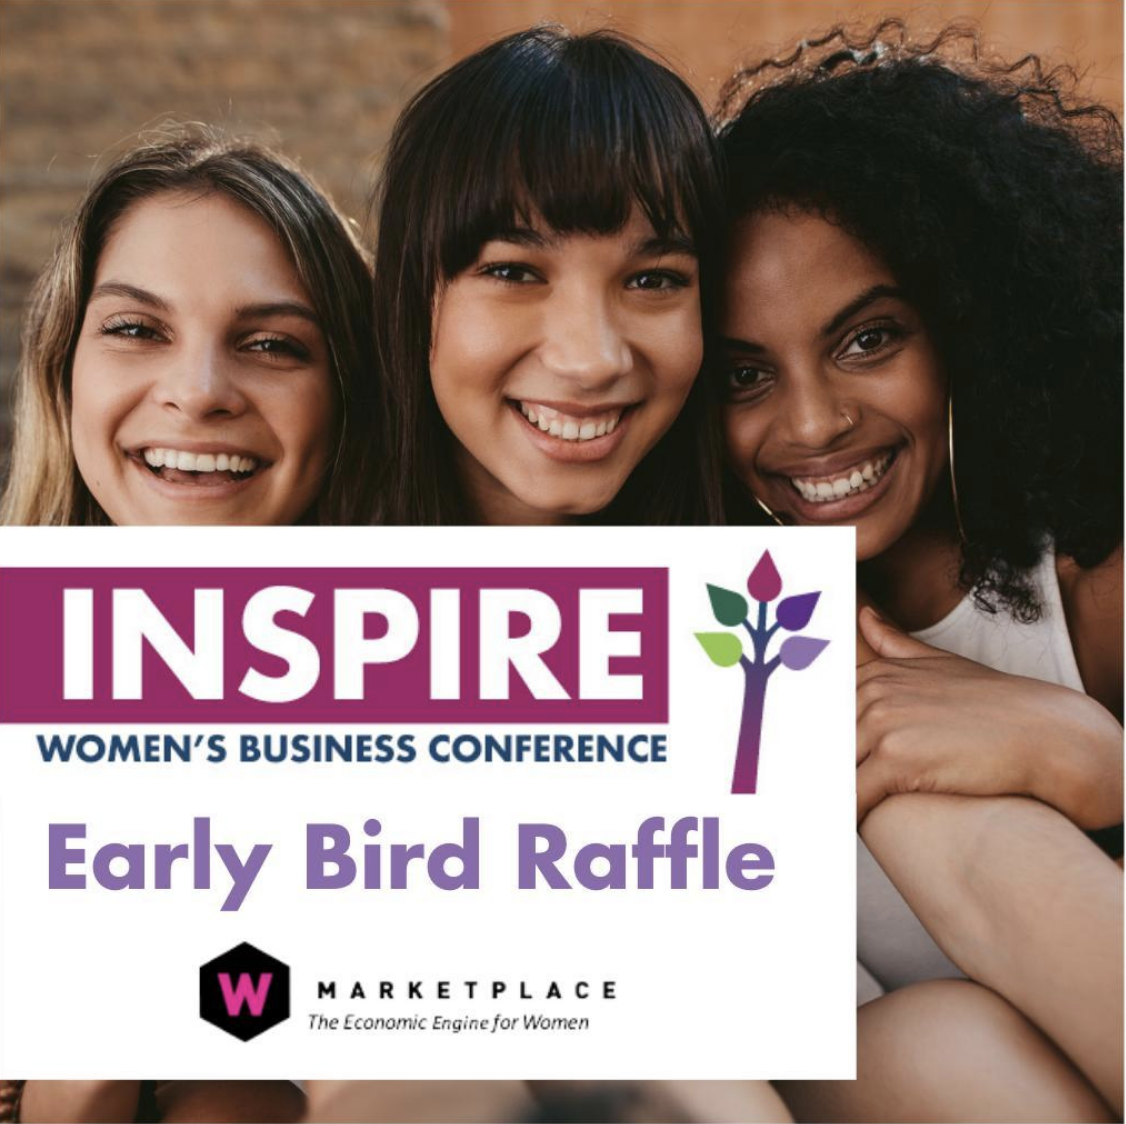 A group of three women smiling. In front of them is a image advertising the early bird raffle for the Inspire conference.